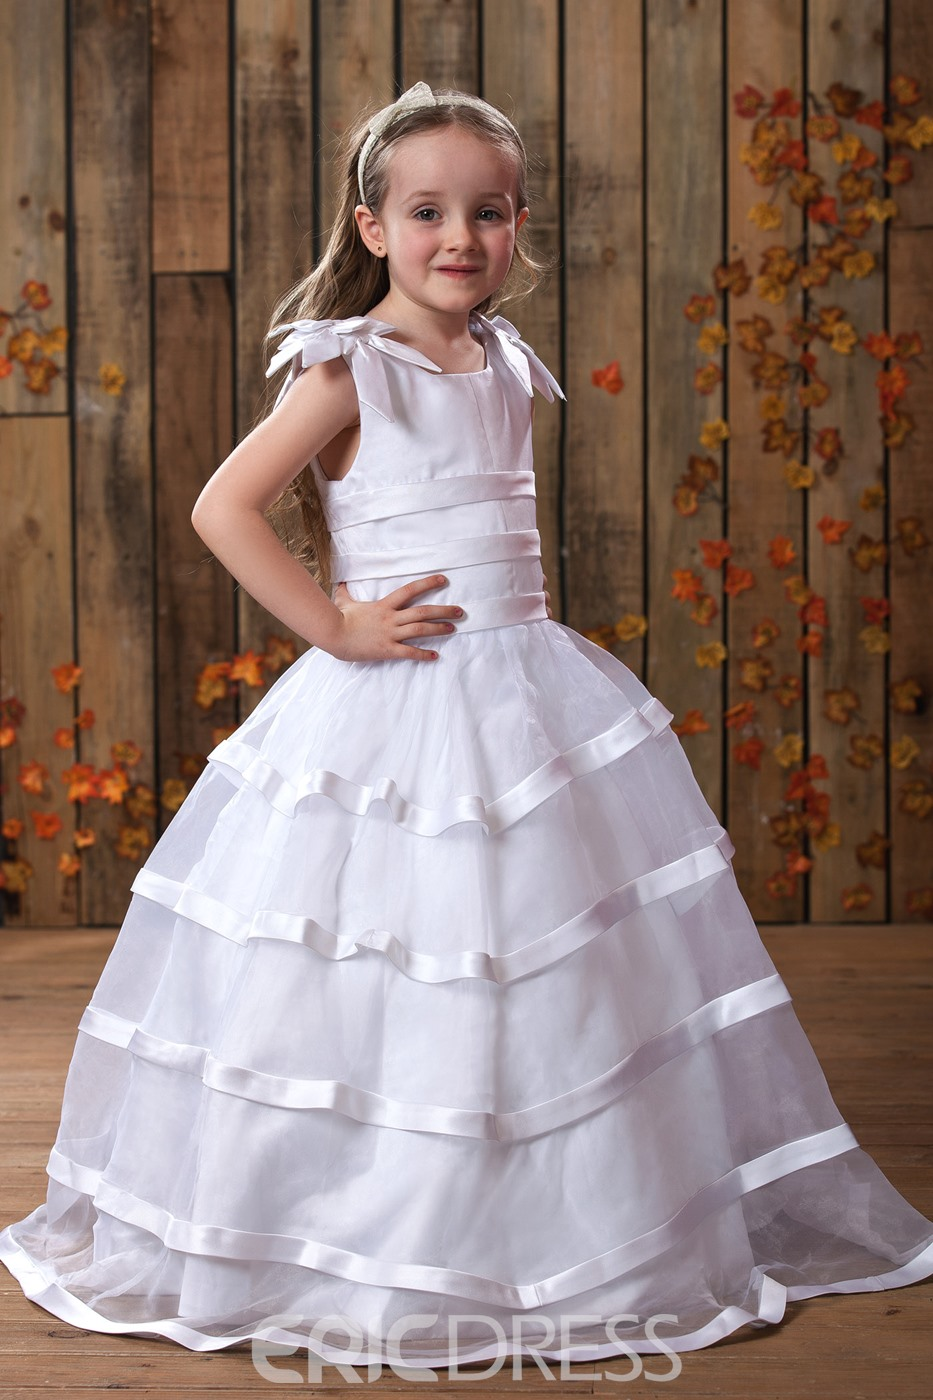 A-Line Round-neck Floor- Length Flower Girls Dress Style